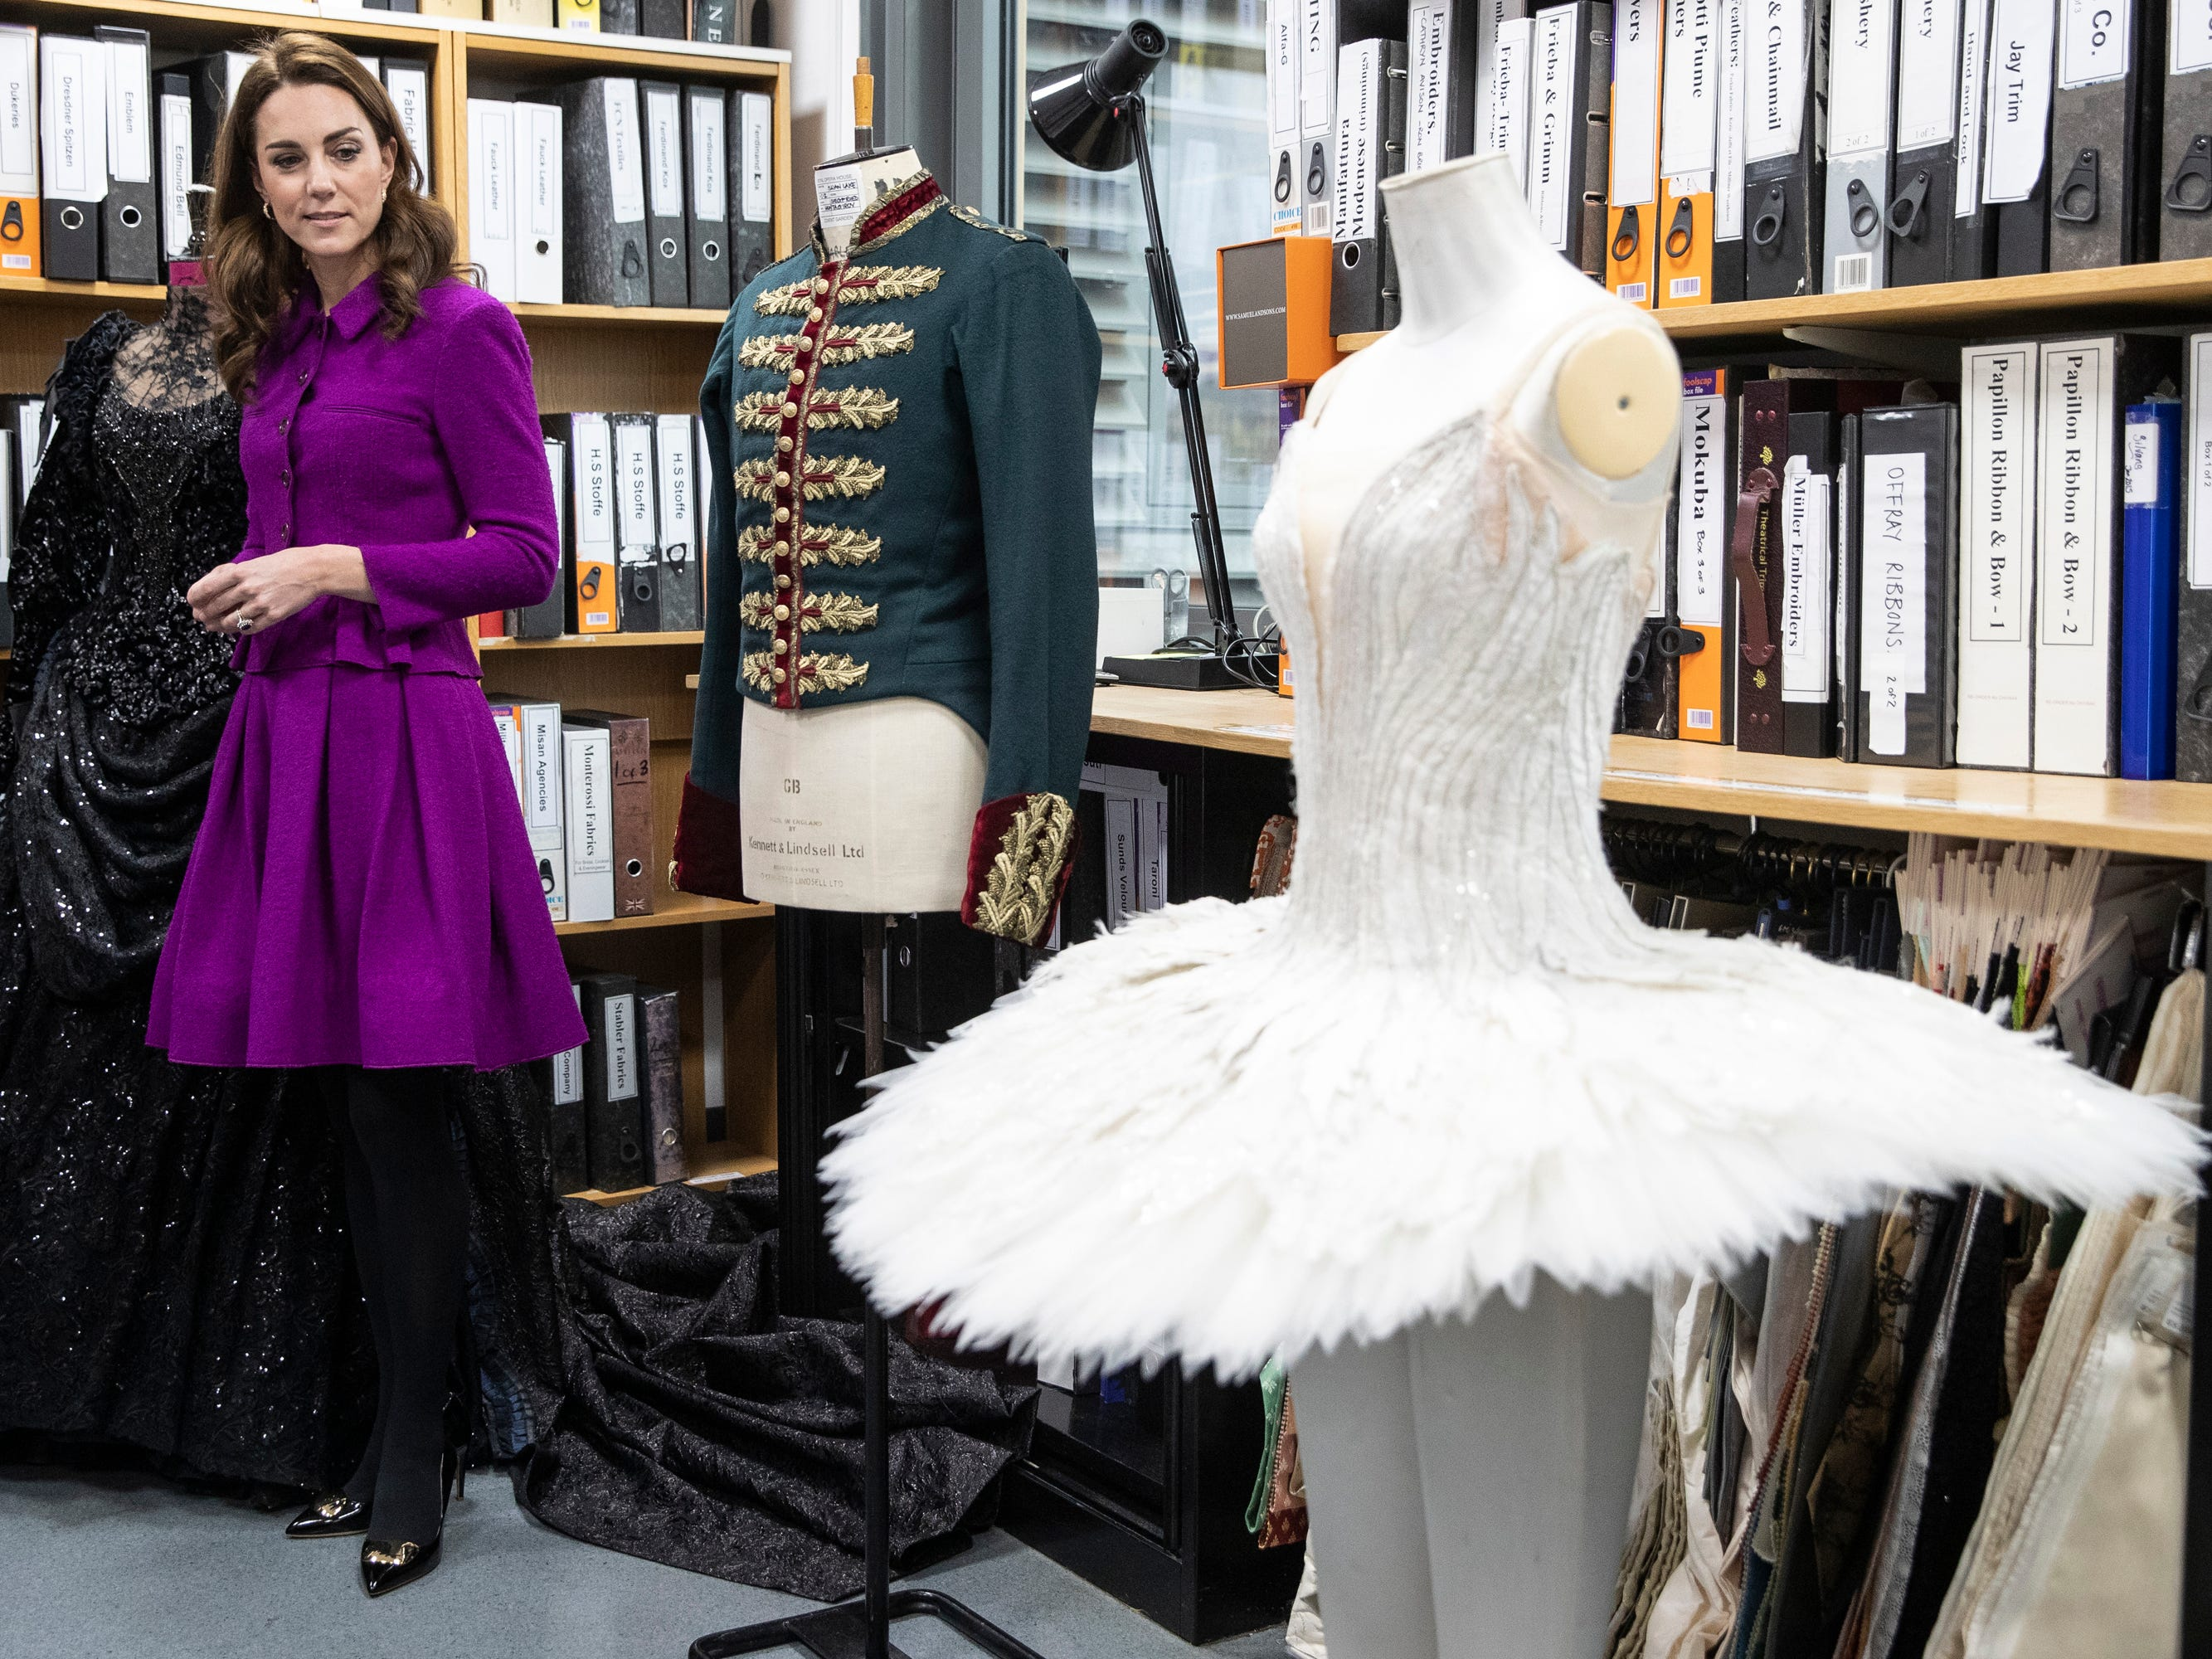 Britain's Kate, Duchess of Cambridge, views costumes in the Pattern Room during a visit to the Costume Department and to meet with Principal Dancers at The Royal Opera in London, Wednesday, Jan. 16, 2019.